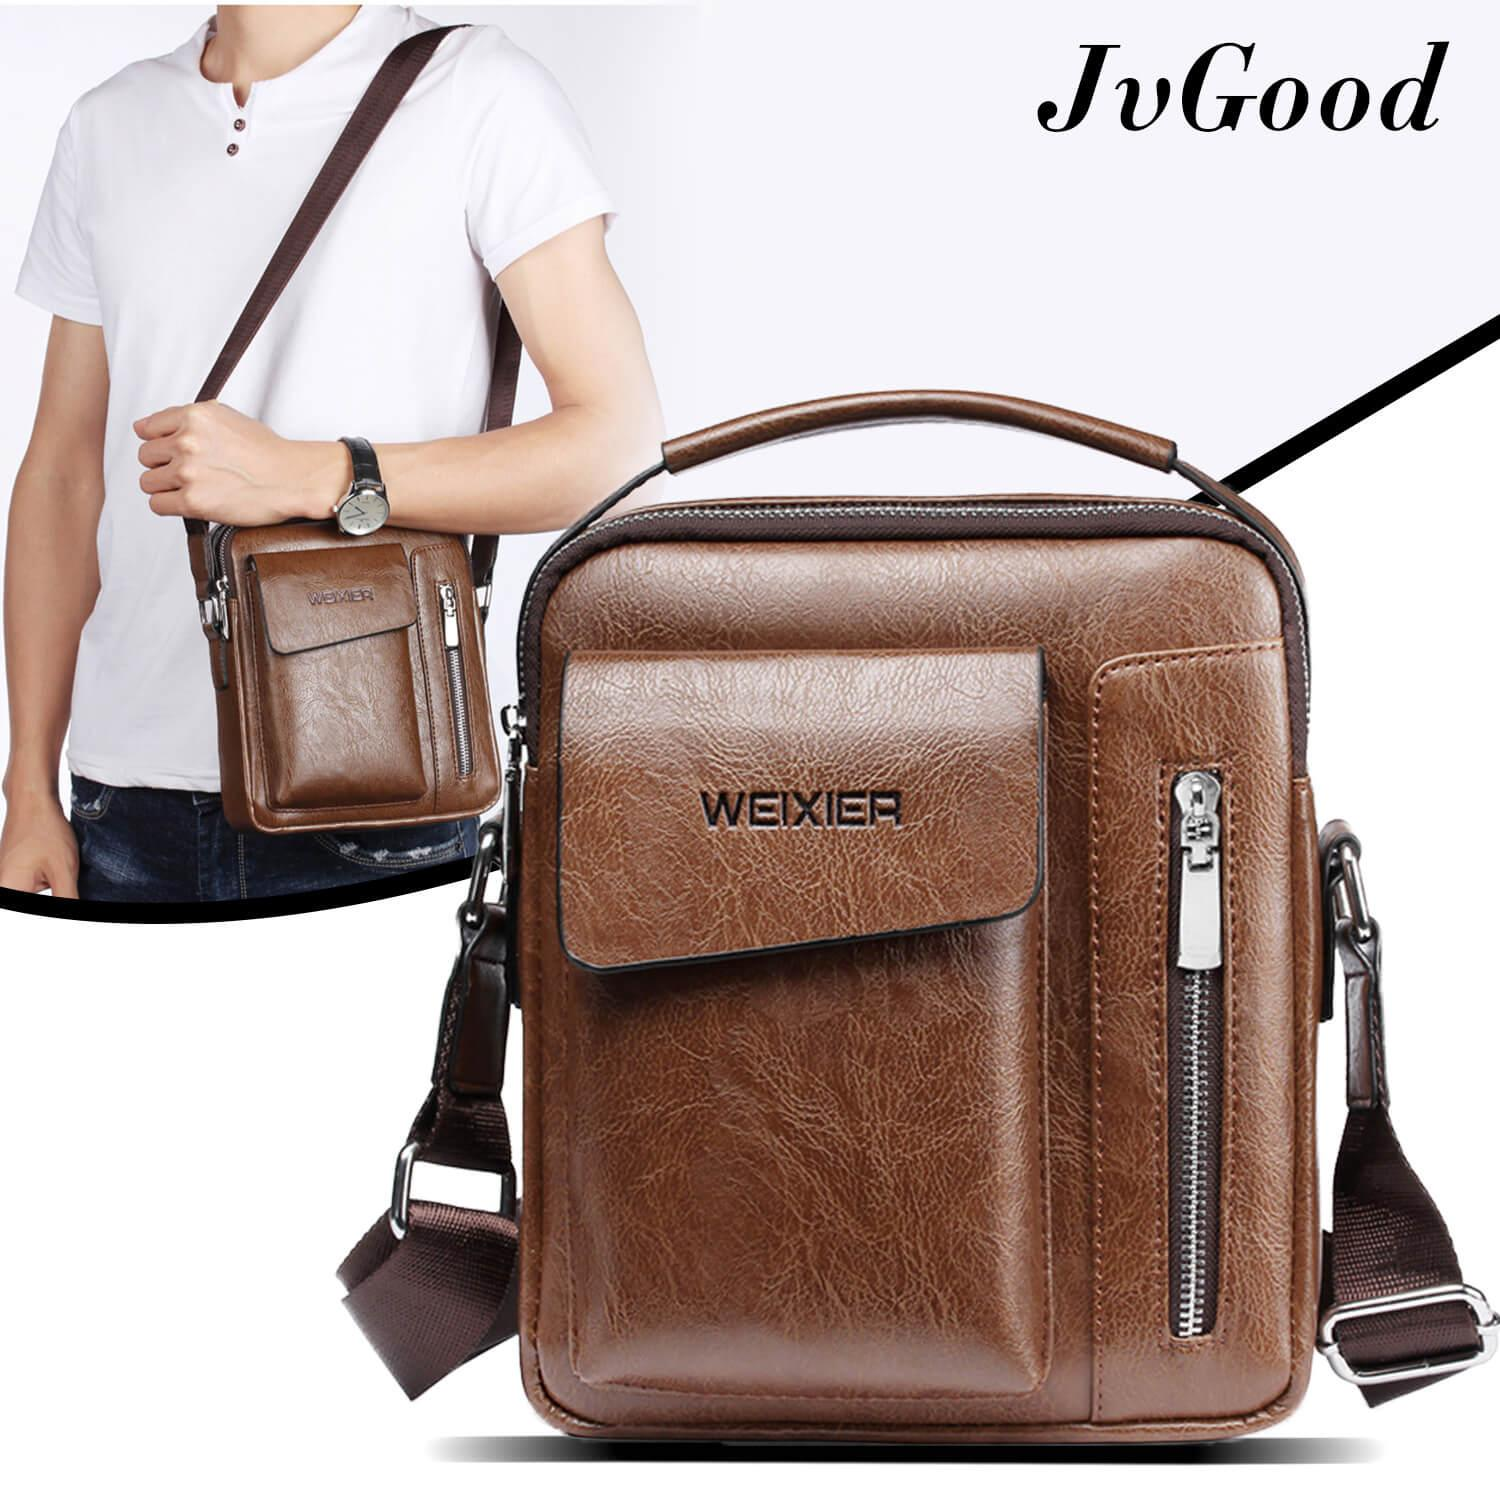 ea5b471c8971 Messenger Bags for sale - Messenger Bags for Men online brands ...